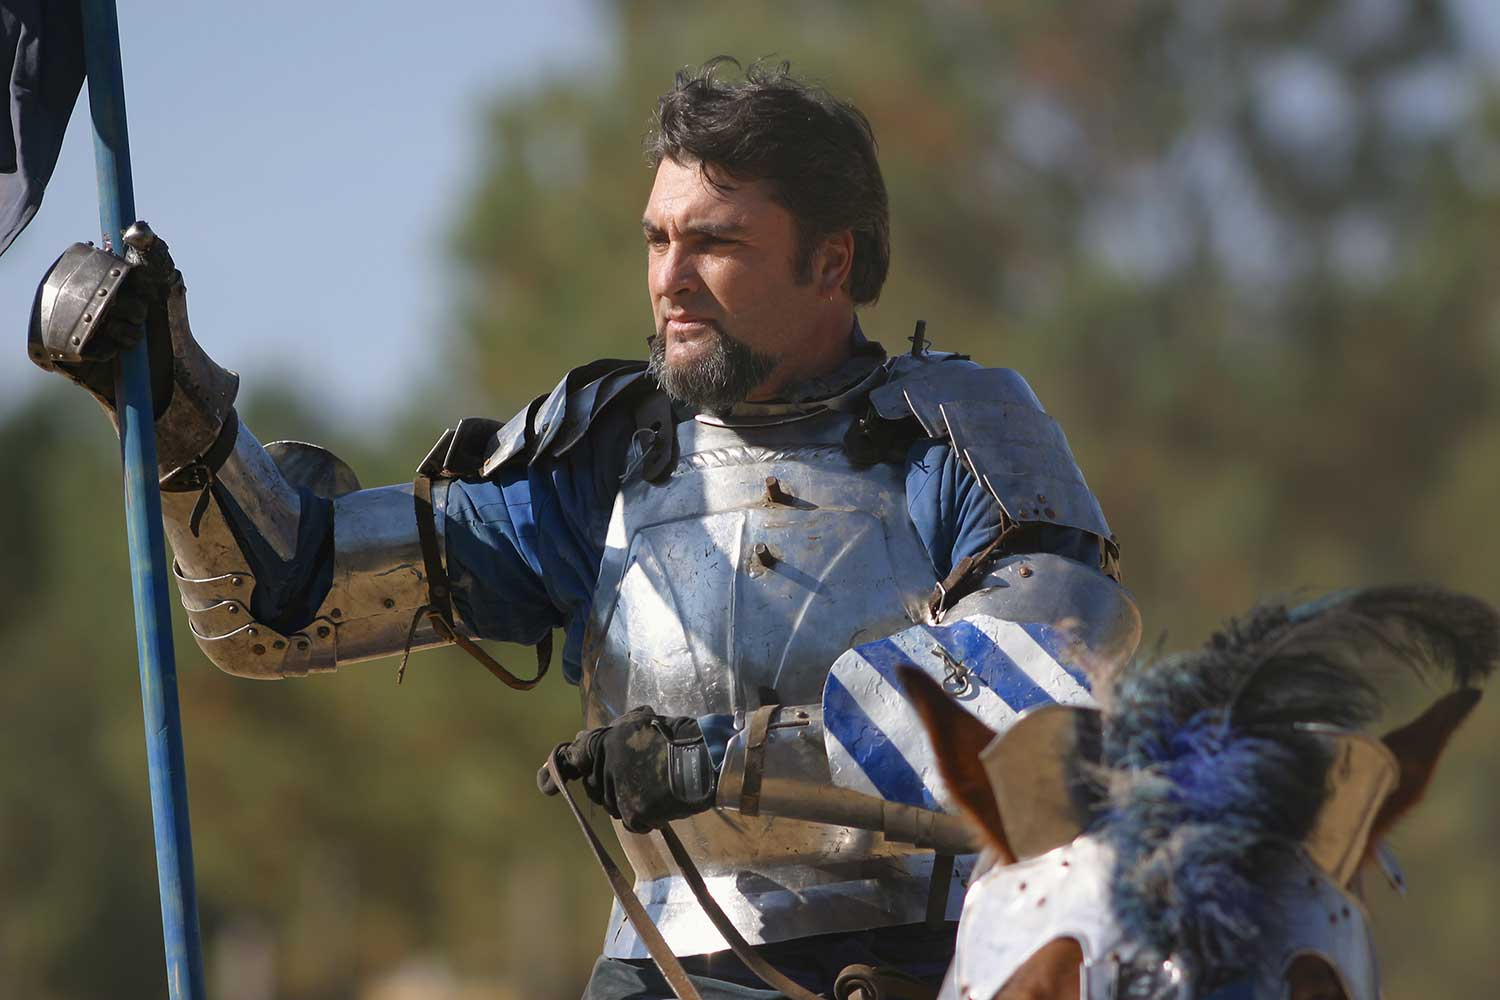 knight with a joust riding a horse at the louisiana renaissance festival